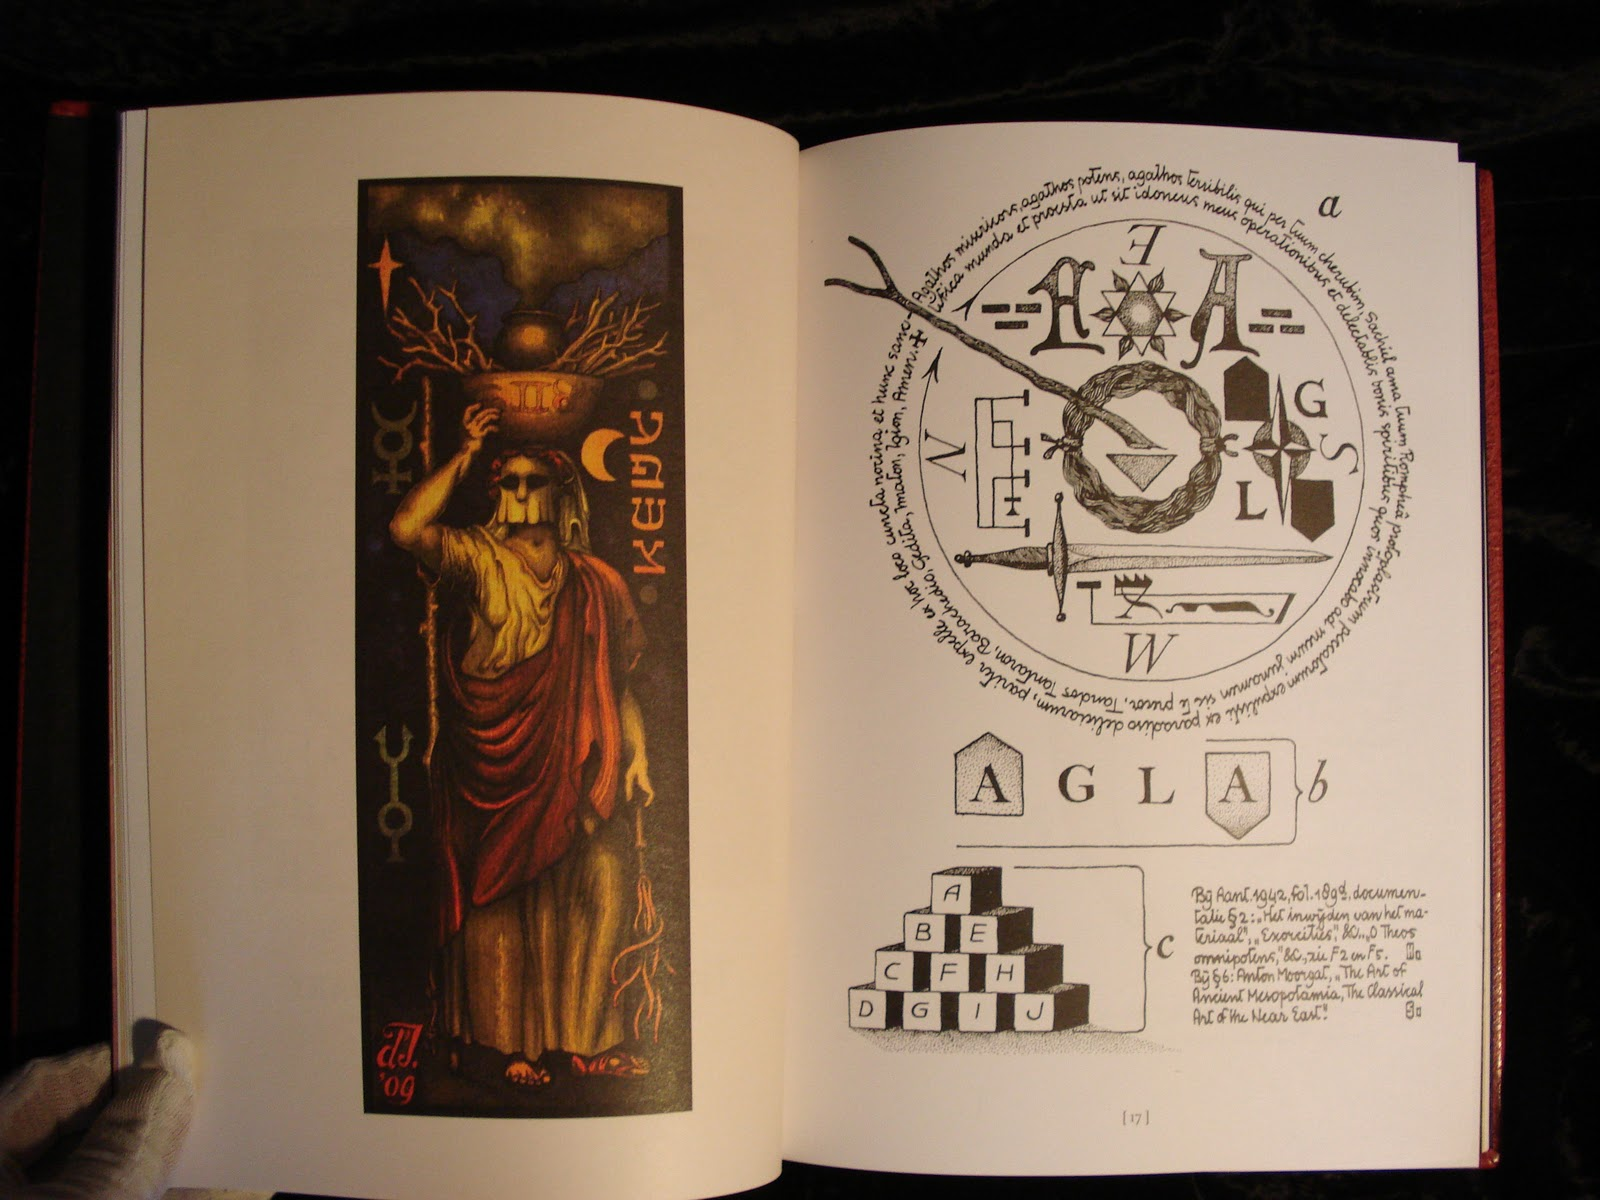 Balkans arcane bindings the occult reliquary images artefacts the occult reliquary images artefacts of the richel eldermans collection edited by daniel a schulke biocorpaavc